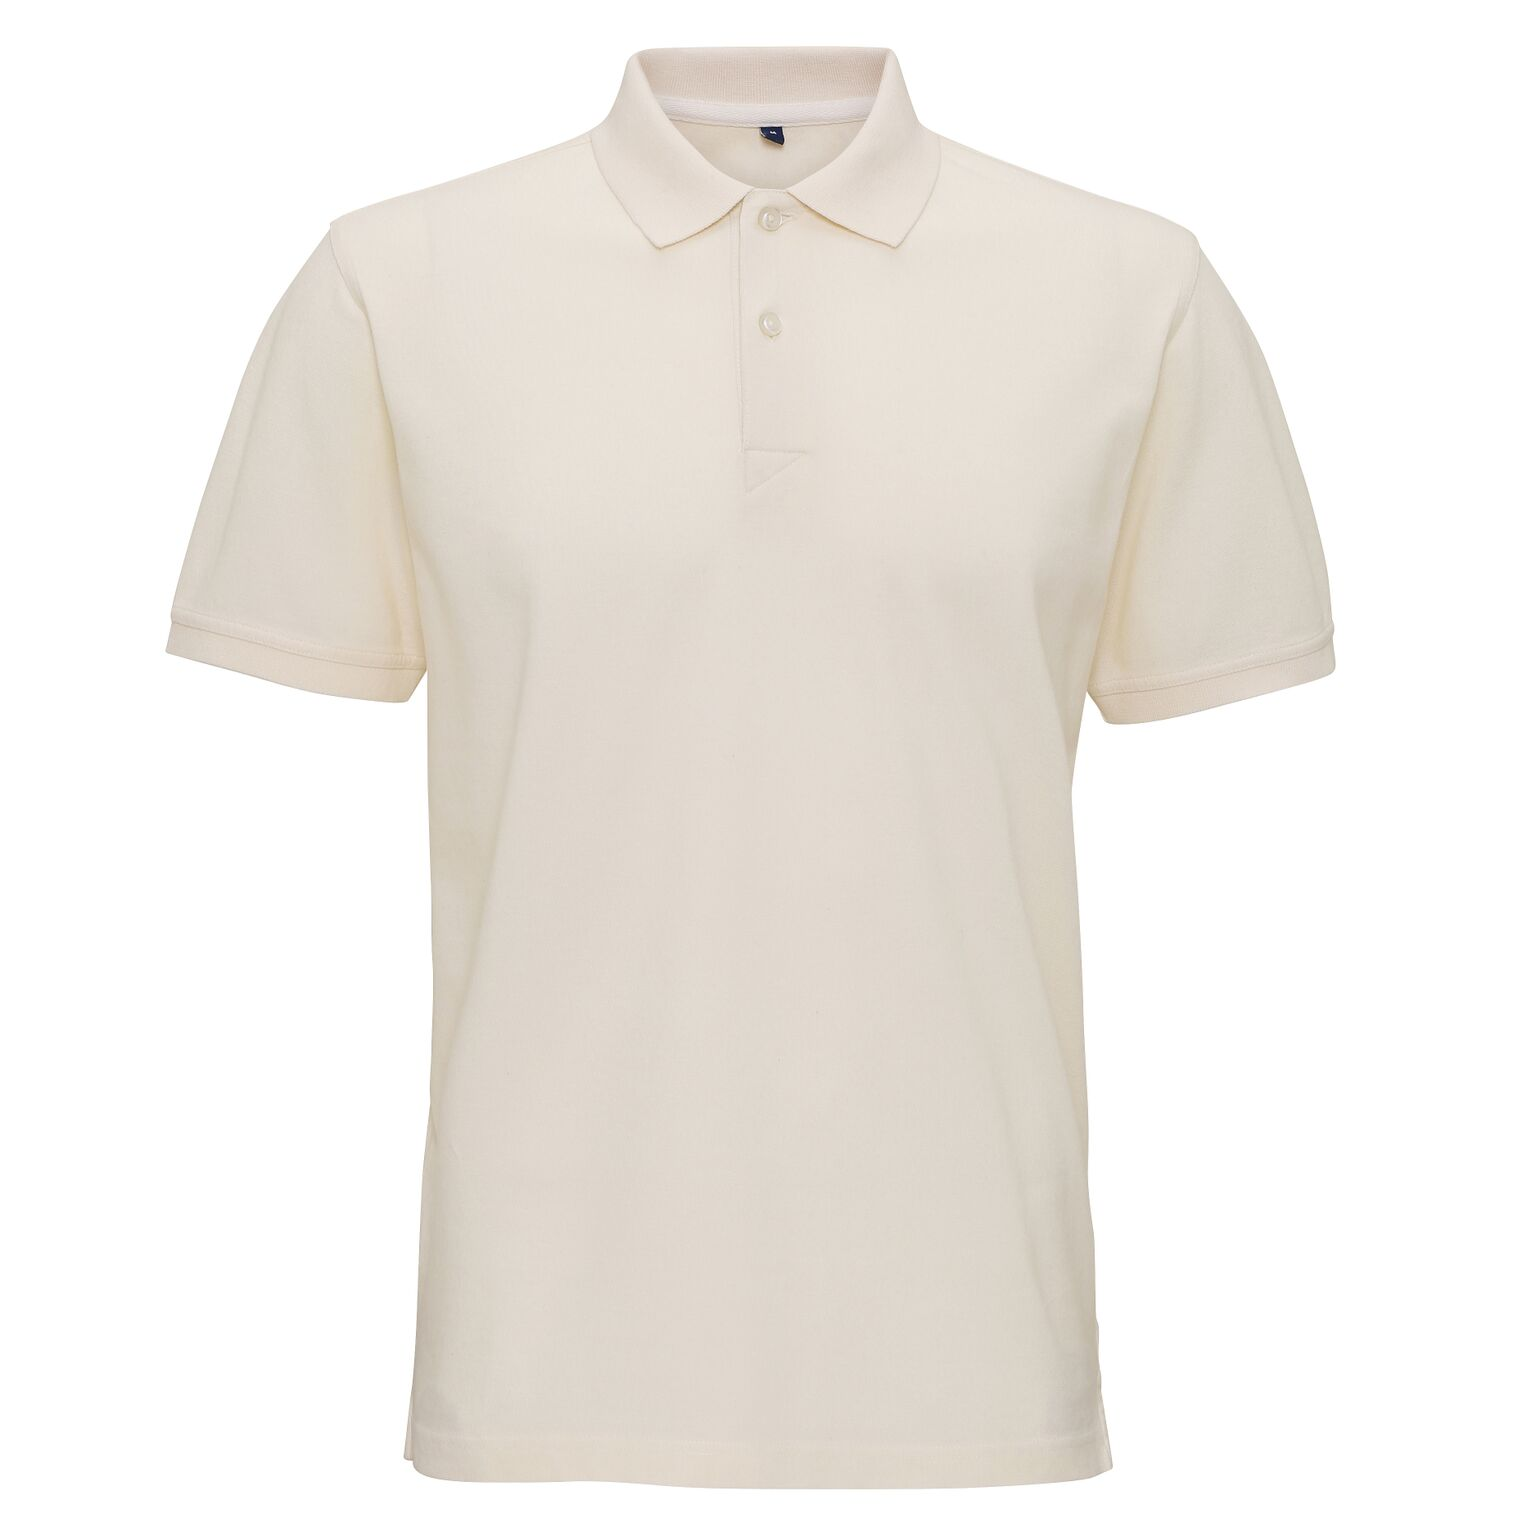 Asquith-amp-Fox-Mens-Coastal-Vintage-Wash-Polo-RW6214